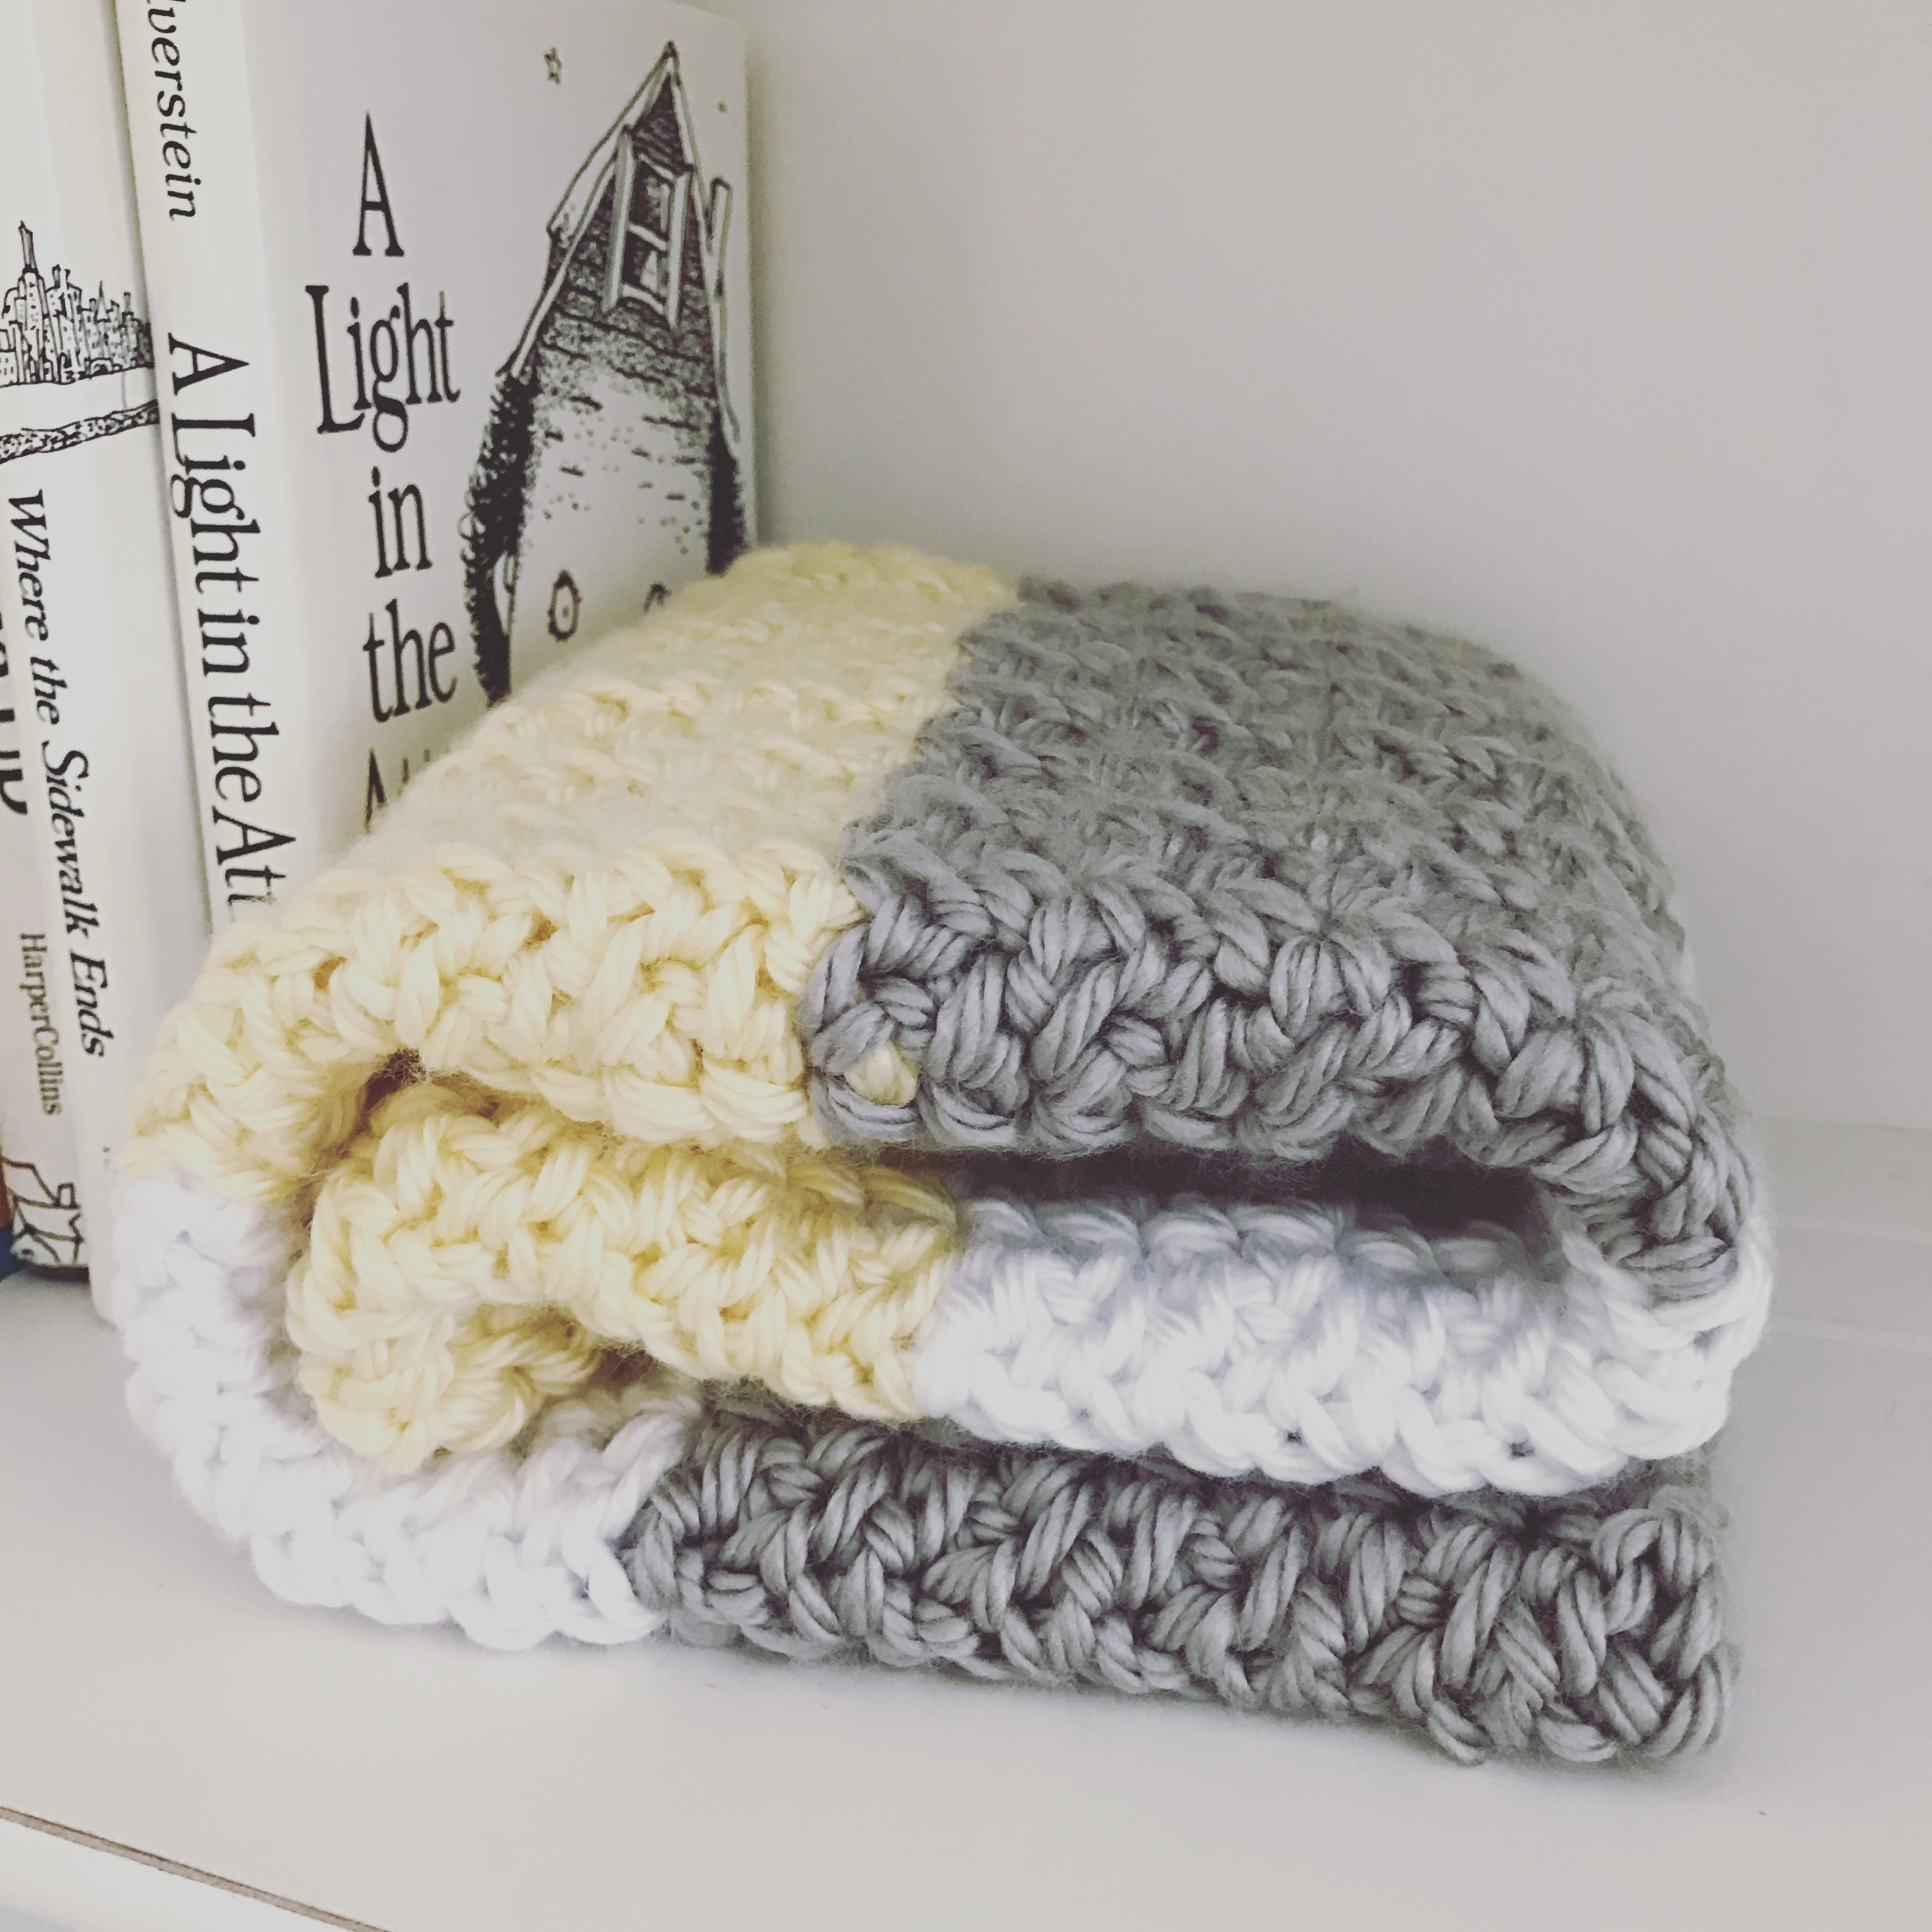 Baby Bamboo Blanket Pattern: Comfy And Cozy Baby Blanket Crochet Project By Deborah O